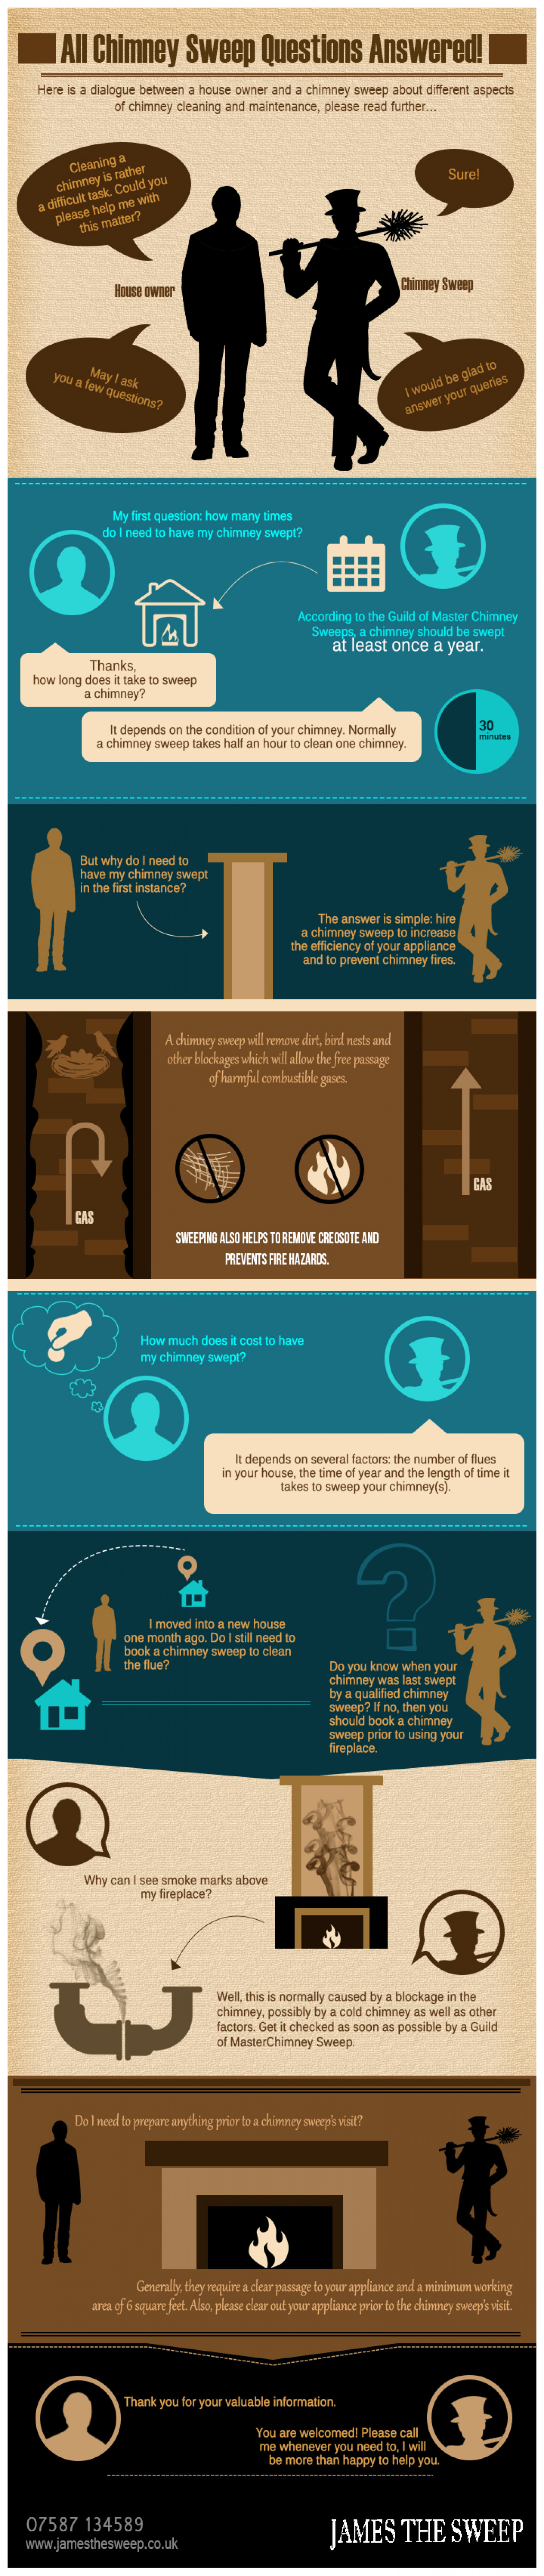 All Chimney Sweep Questions Answered Infographic